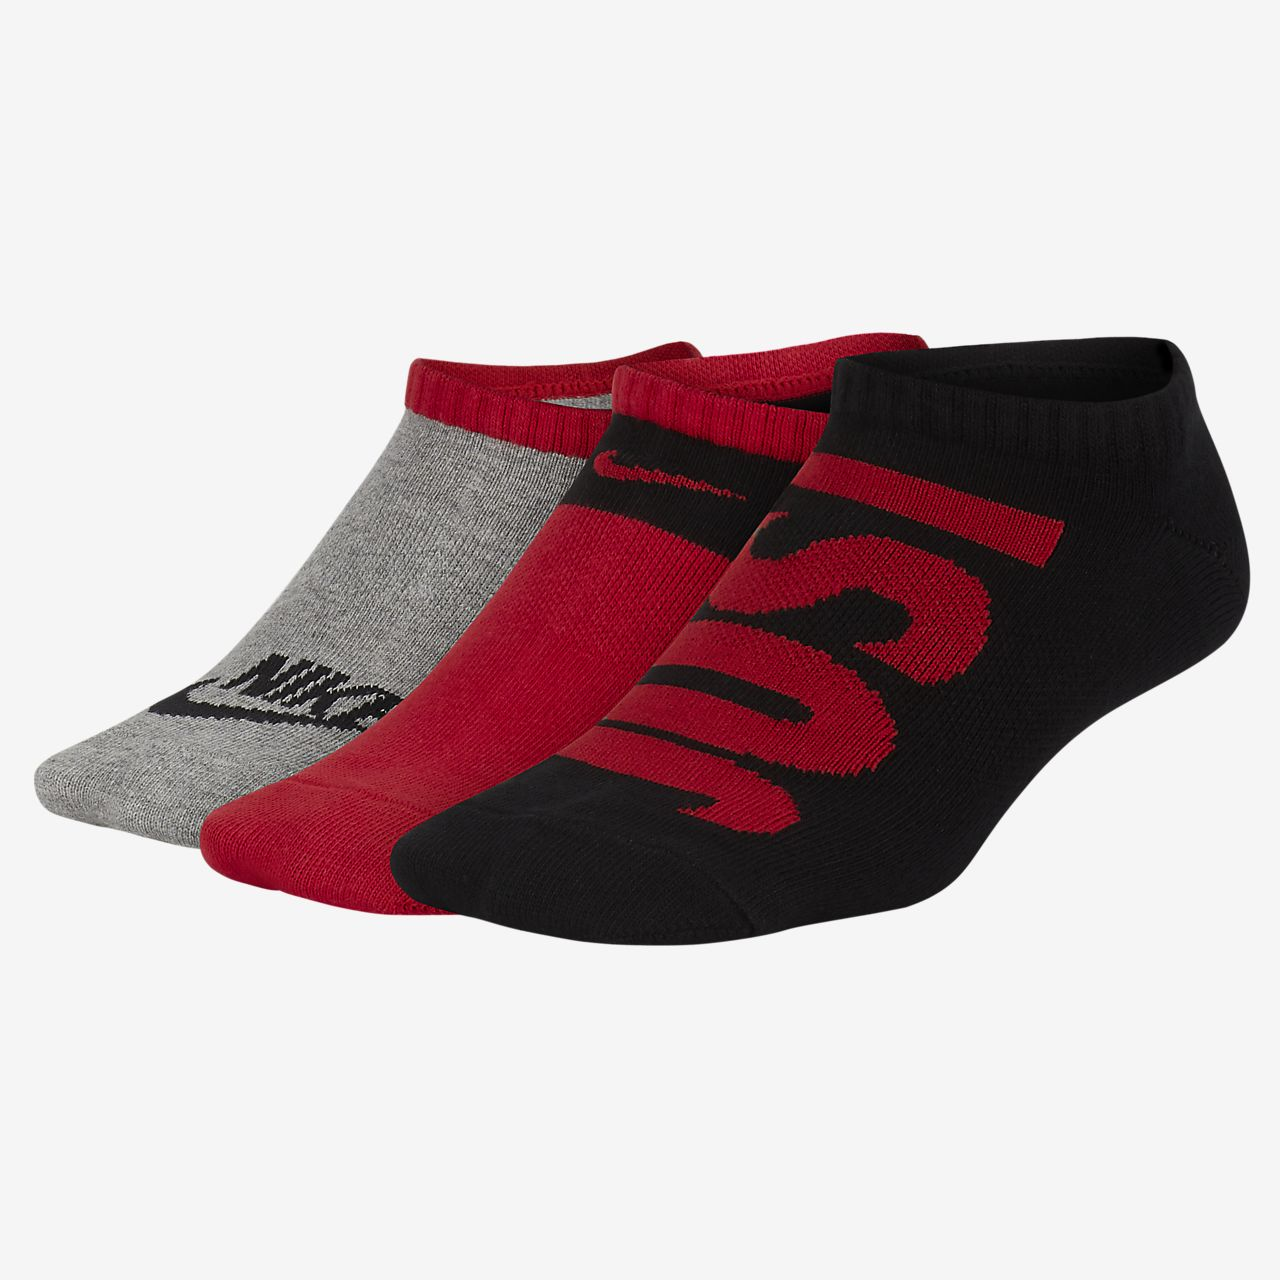 Nike Performance Lightweight Low Kids' Training Socks (3 Pairs)